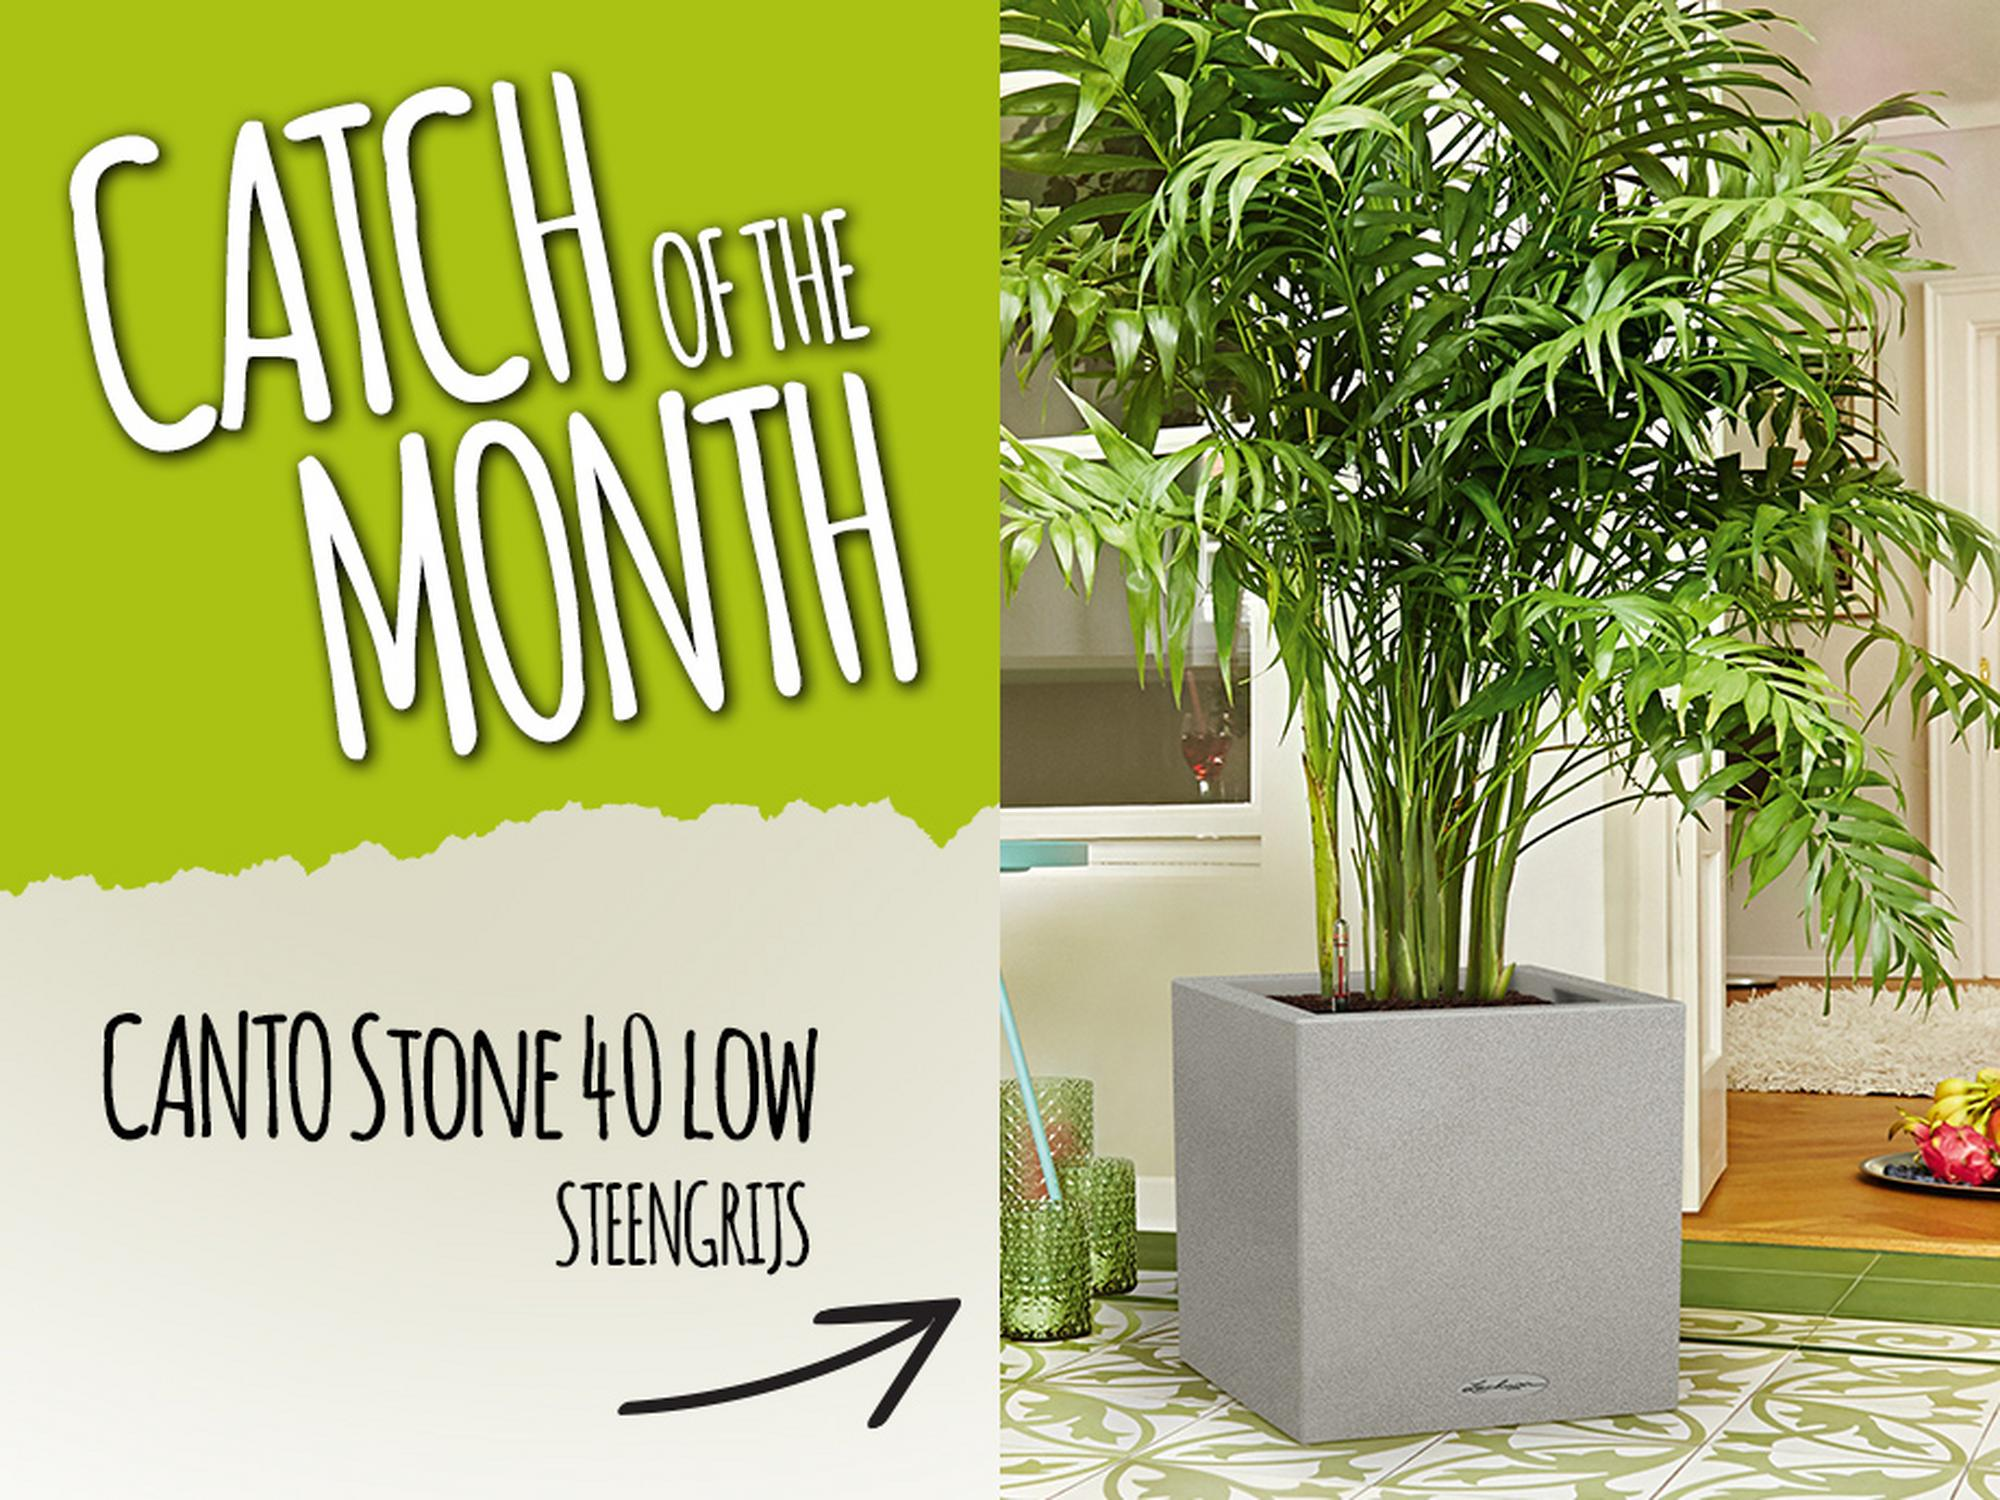 Catch of the Month: 15% korting op de CANTO Stone 40 low steengrijs